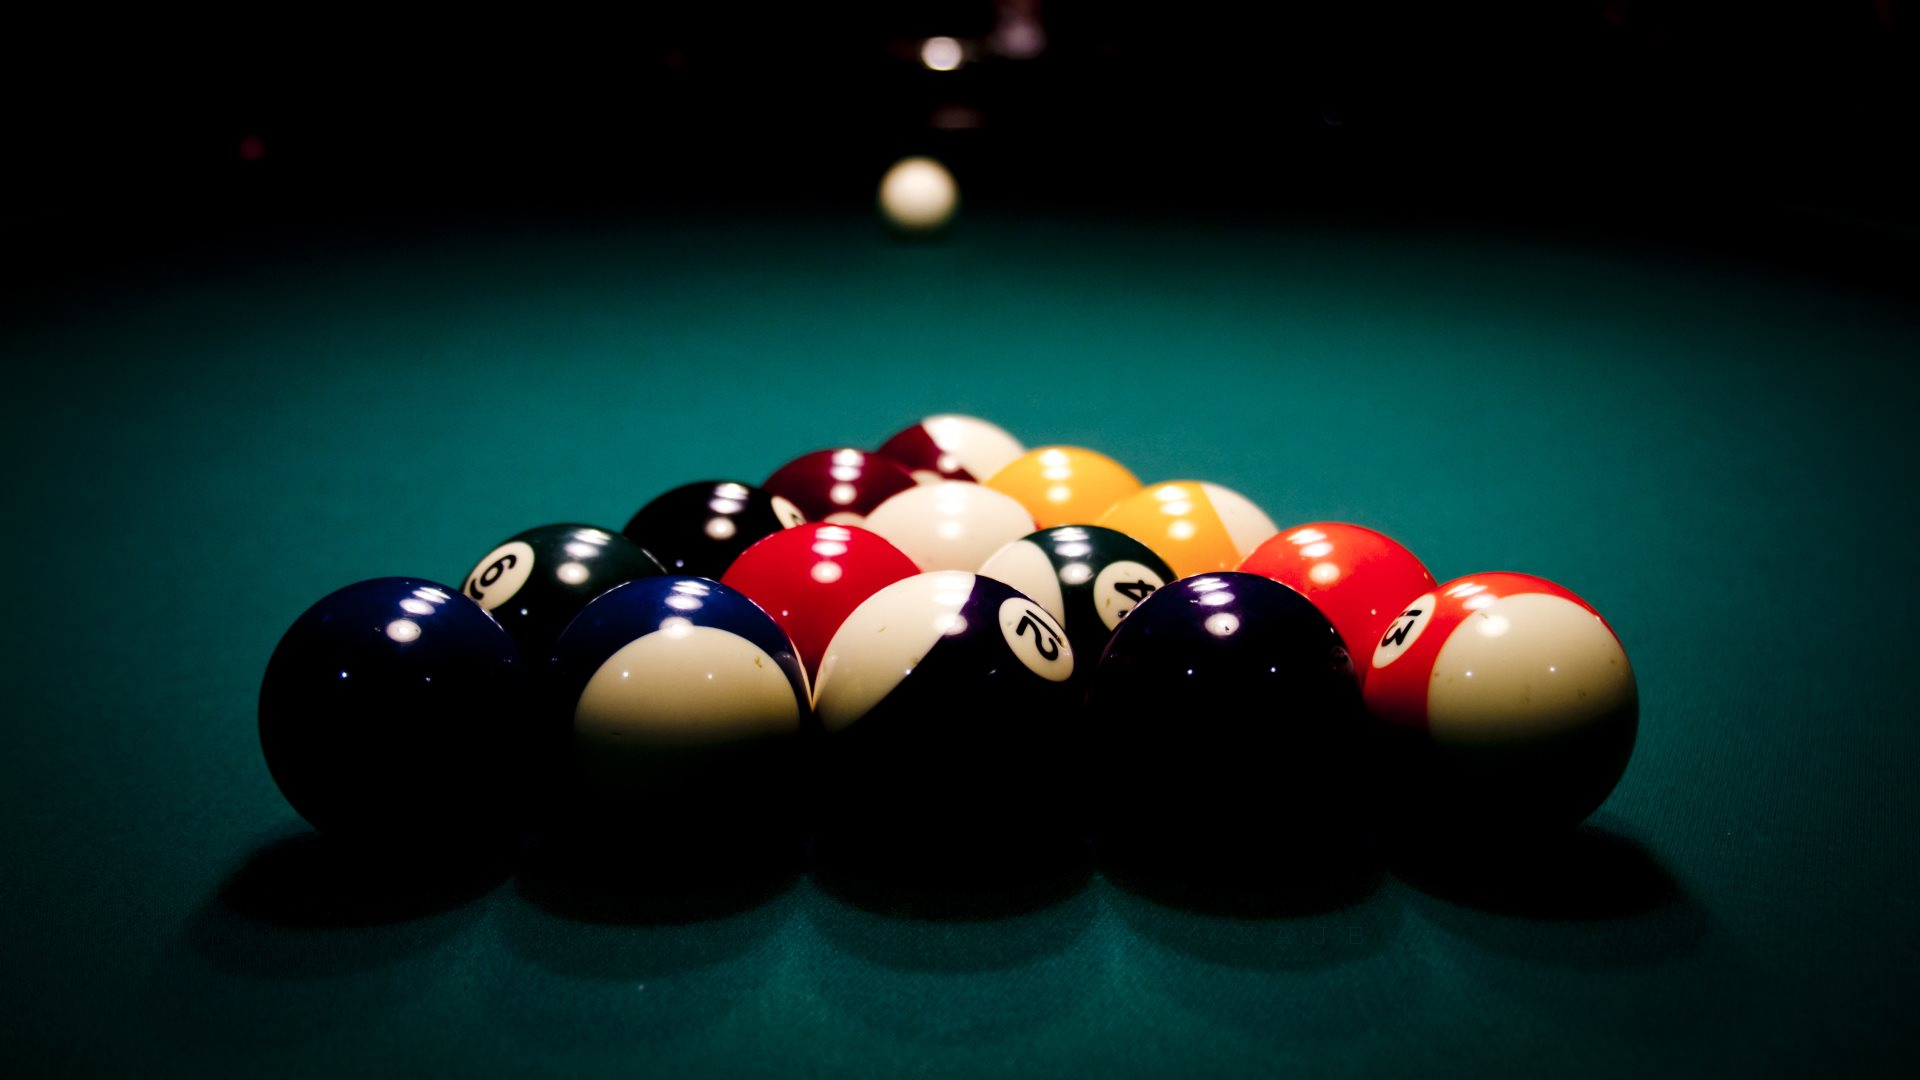 Billiards Wallpapers HD Backgrounds Images Pics Photos 1920x1080